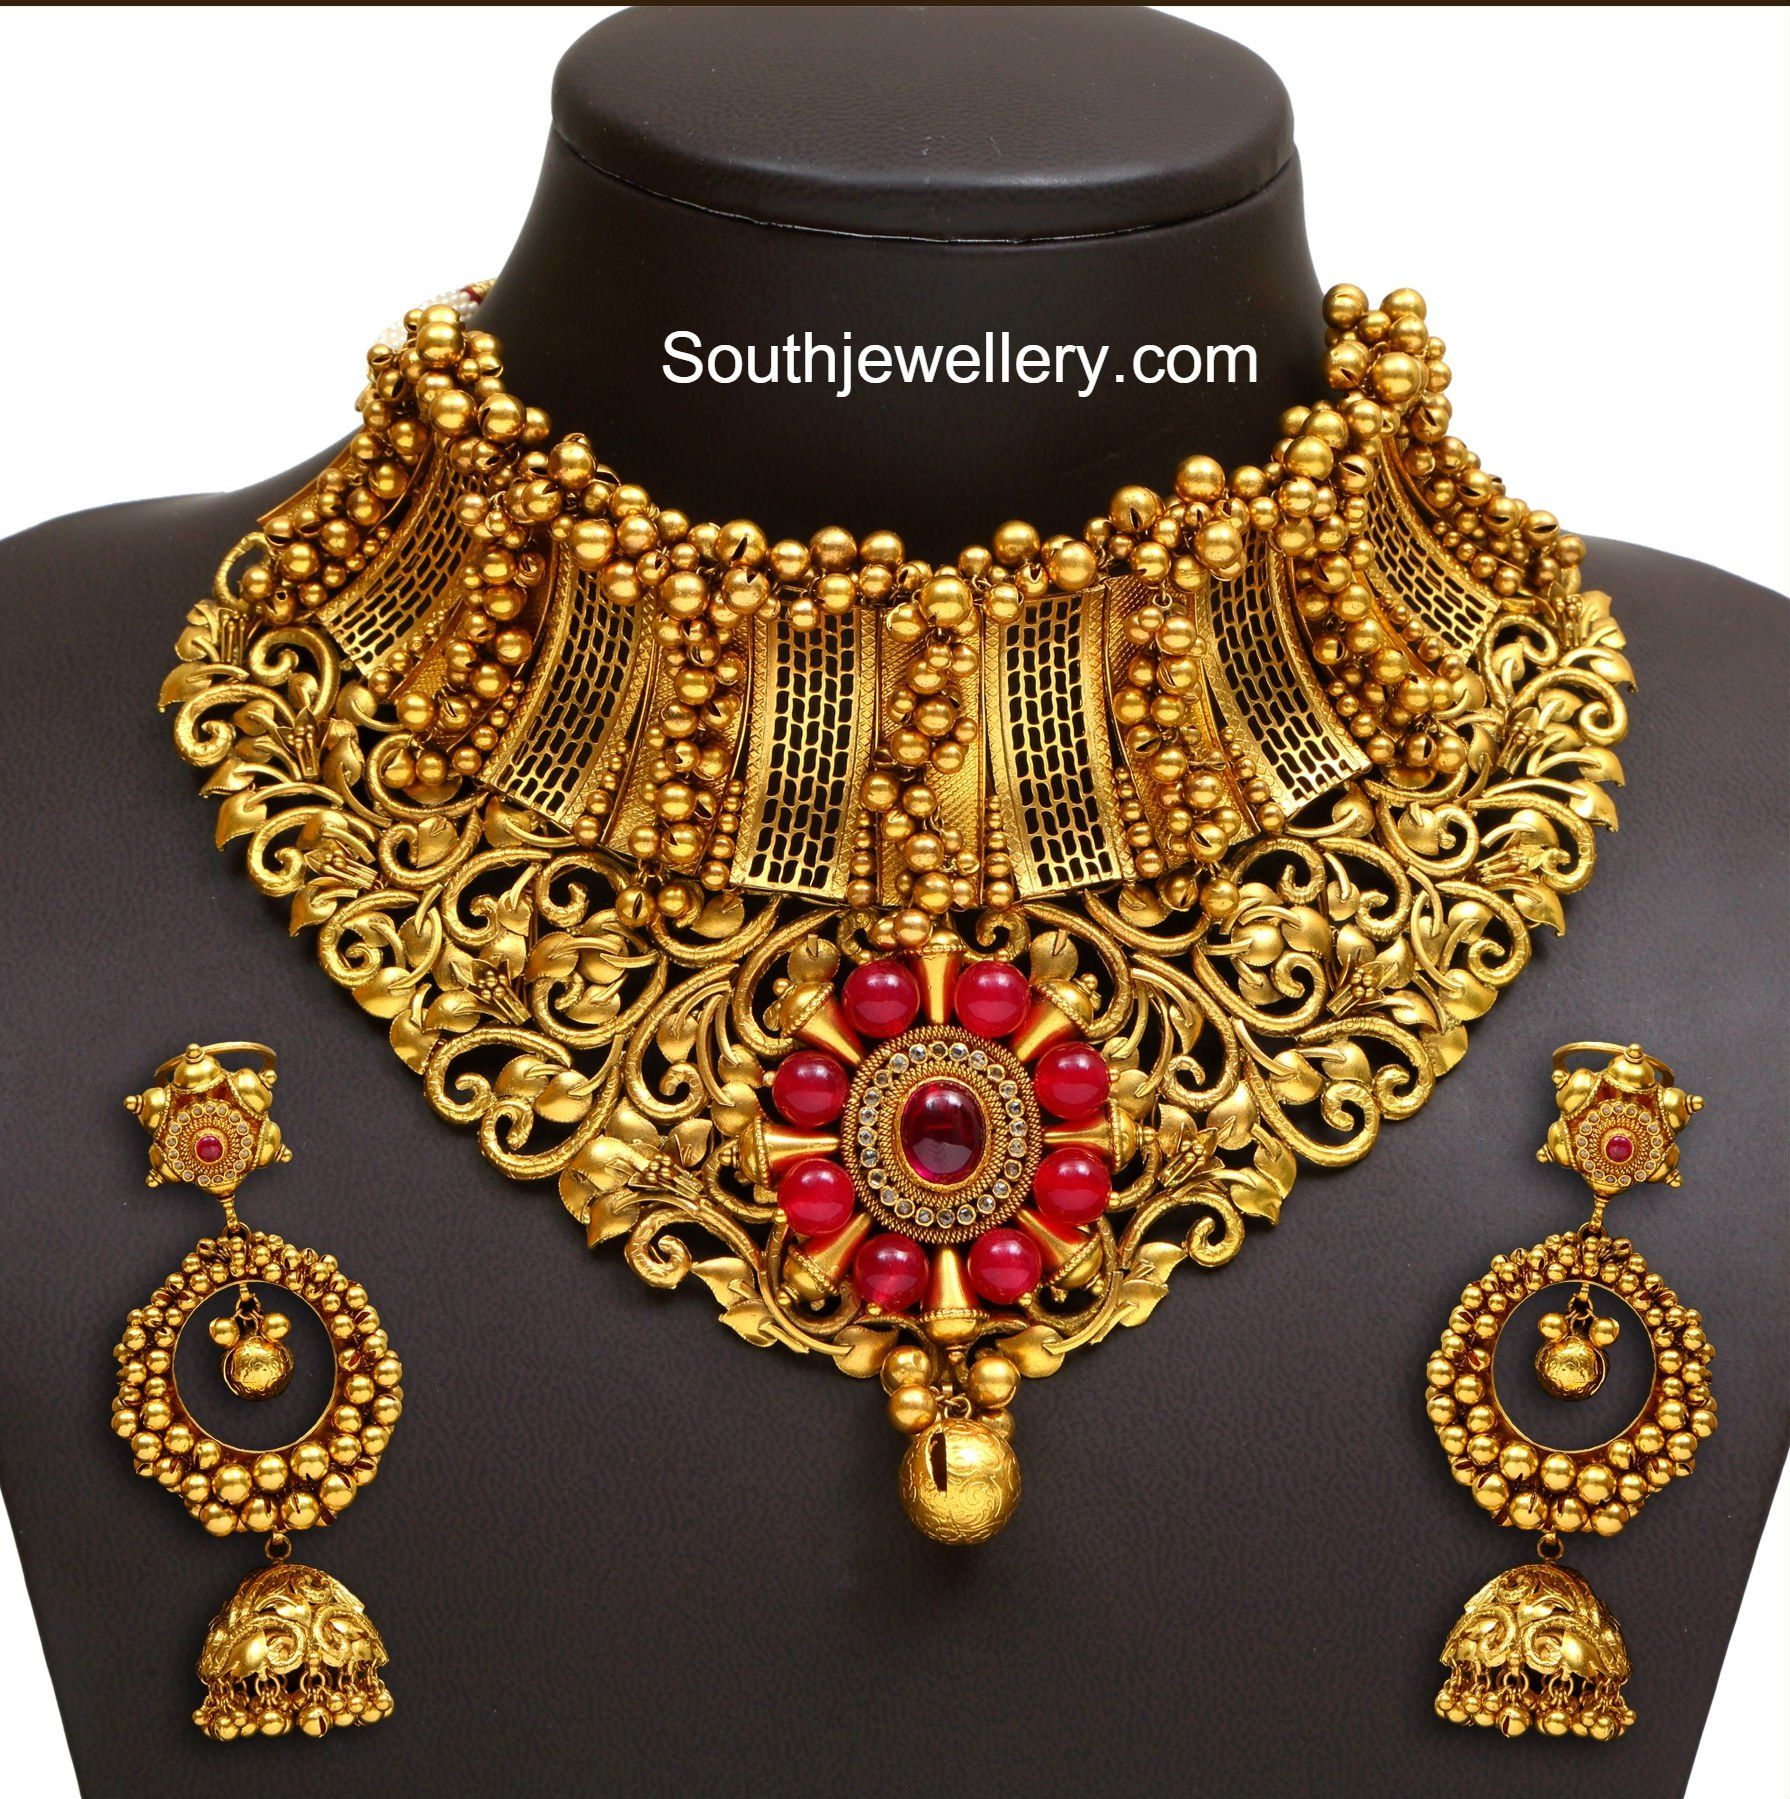 Gold rani haar pictures to pin on pinterest - Bridal Antique Gold Choker Photo